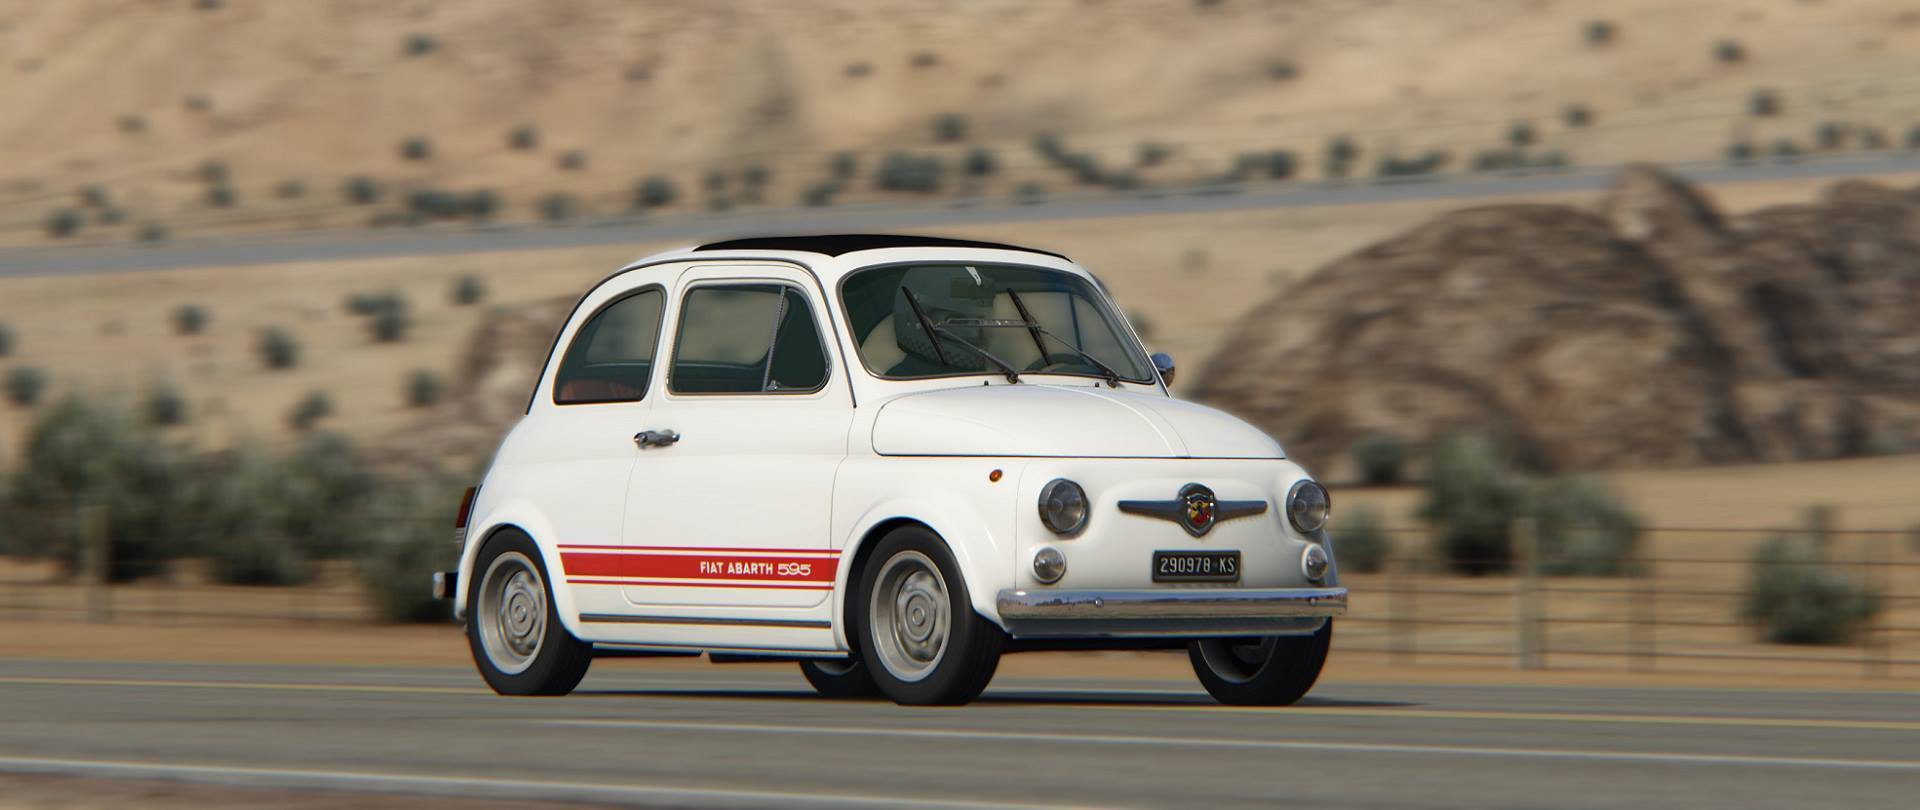 Assetto-Corsa_Abarth-595-EsseEsse.jpg